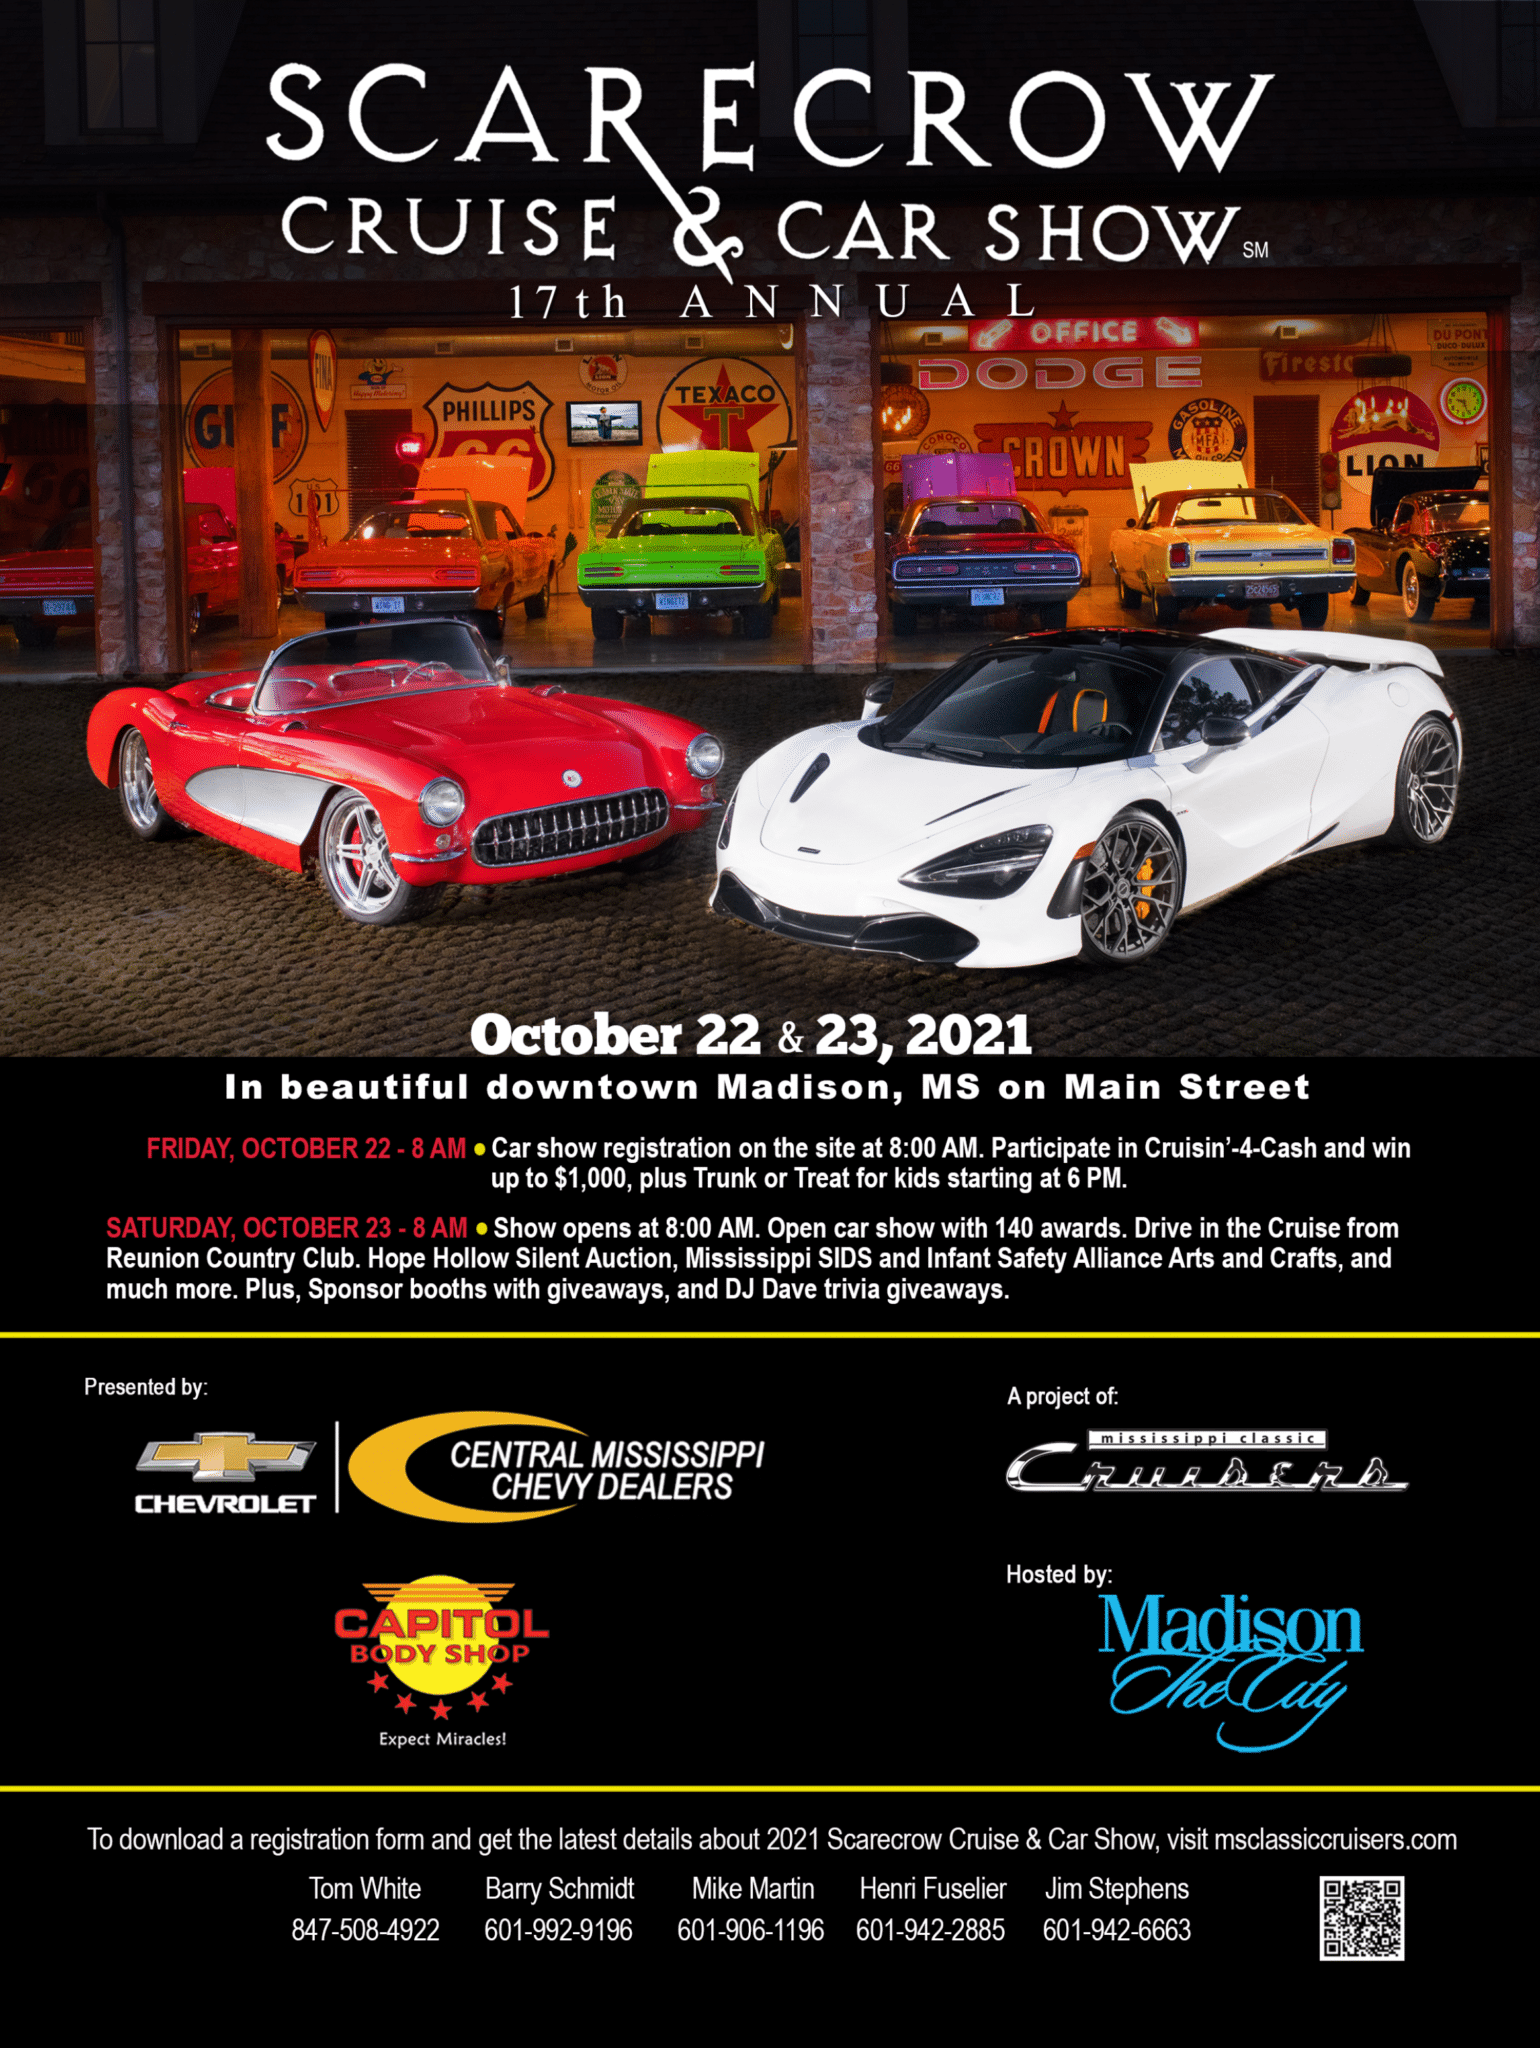 2021 Scarecrow Cruise And Car Show, October 22-23, 2021